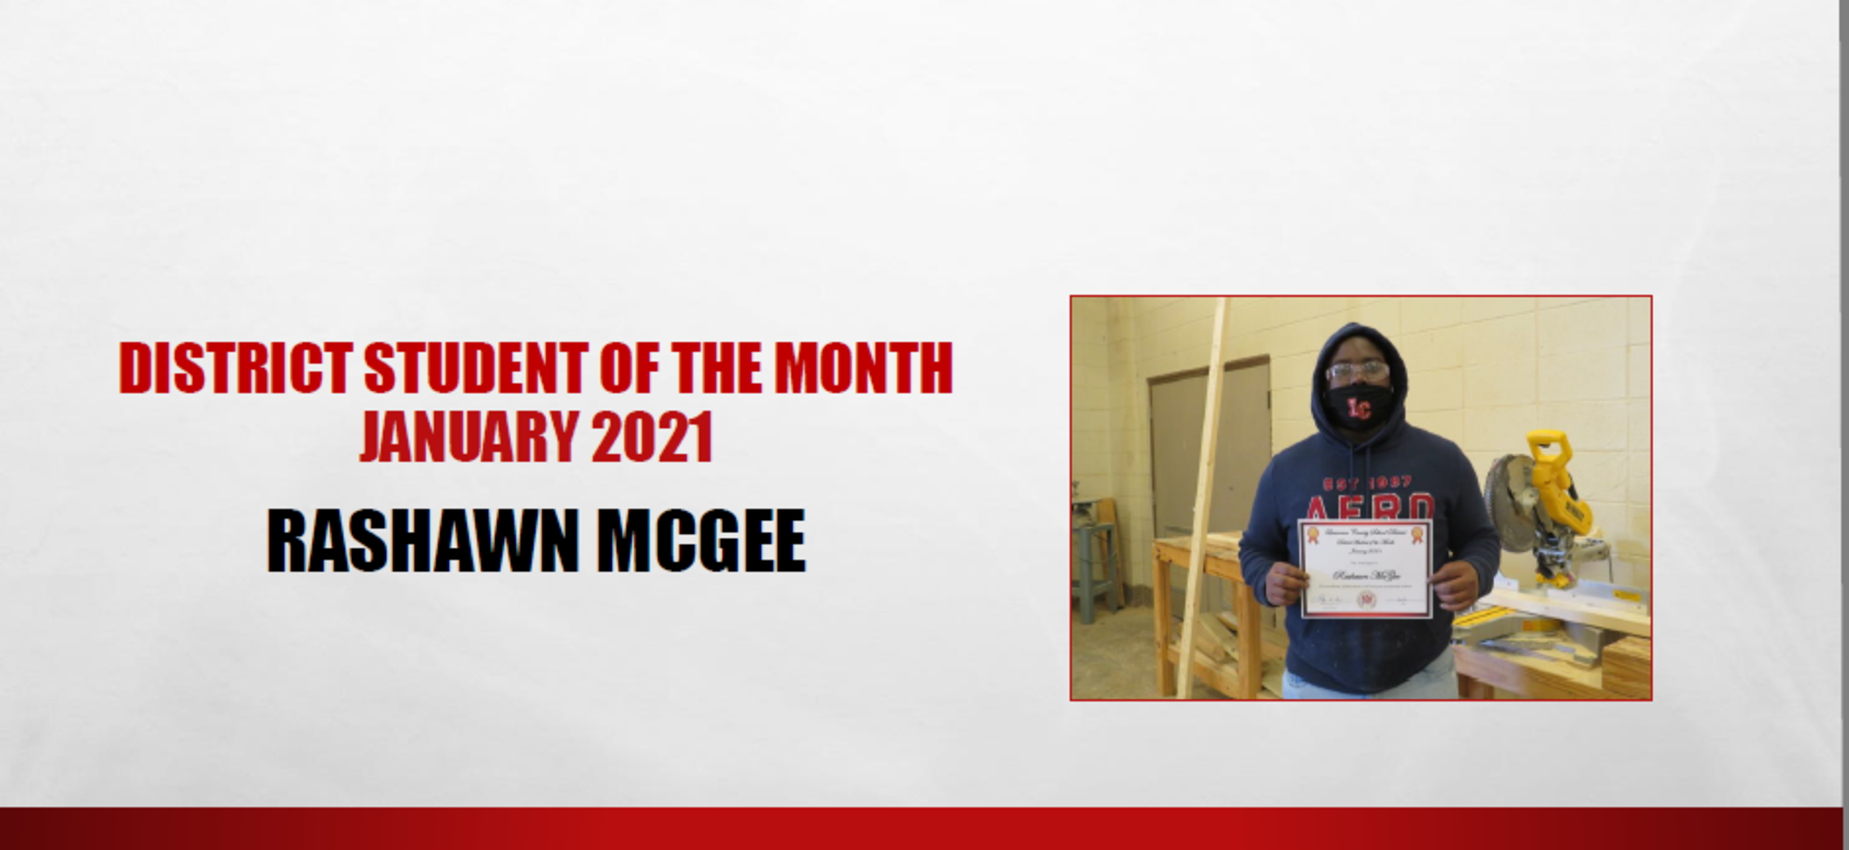 January 2021 Student of the Month Rashawn McGee